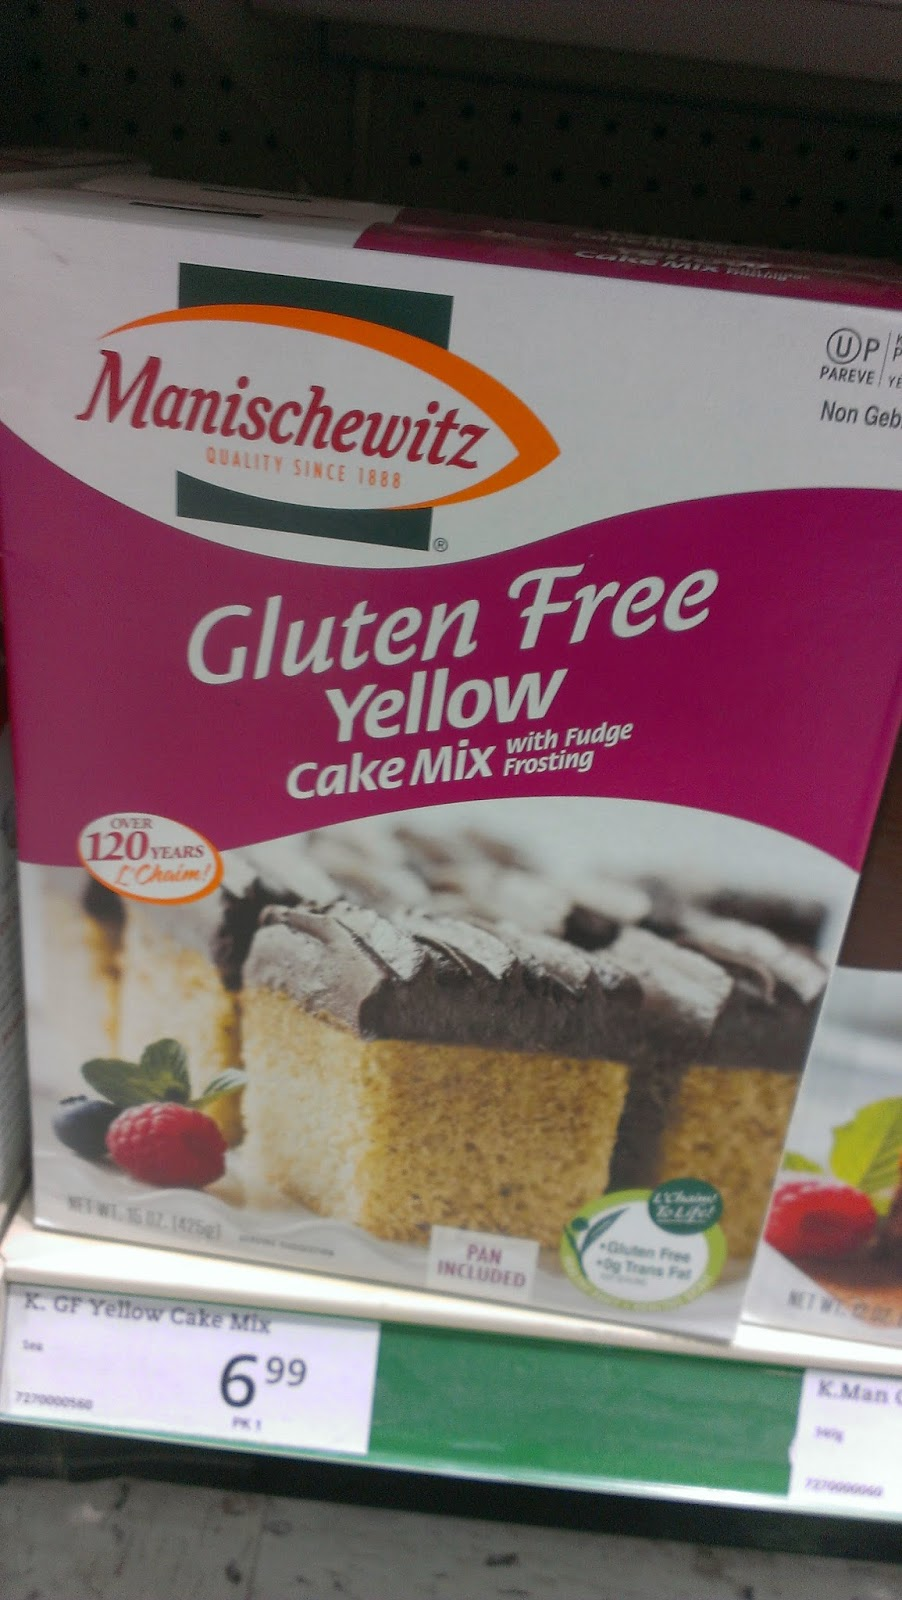 Last Call for Gluten Free Passover a Hawkestone Sobey's